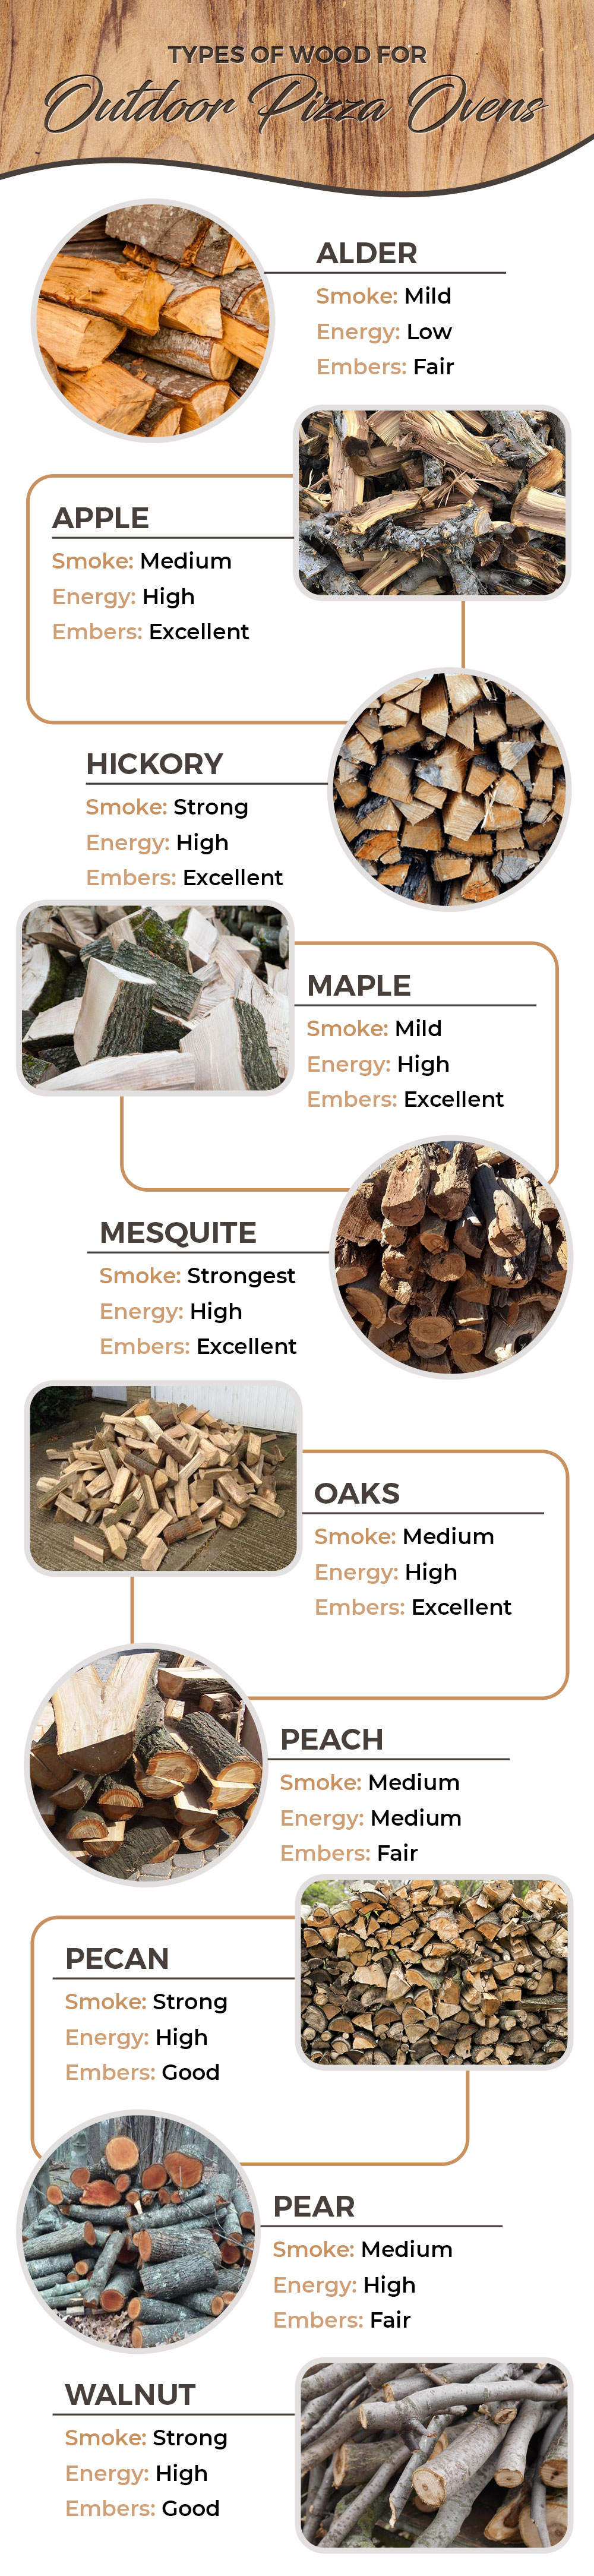 Types of Wood for Outdoor Ovens